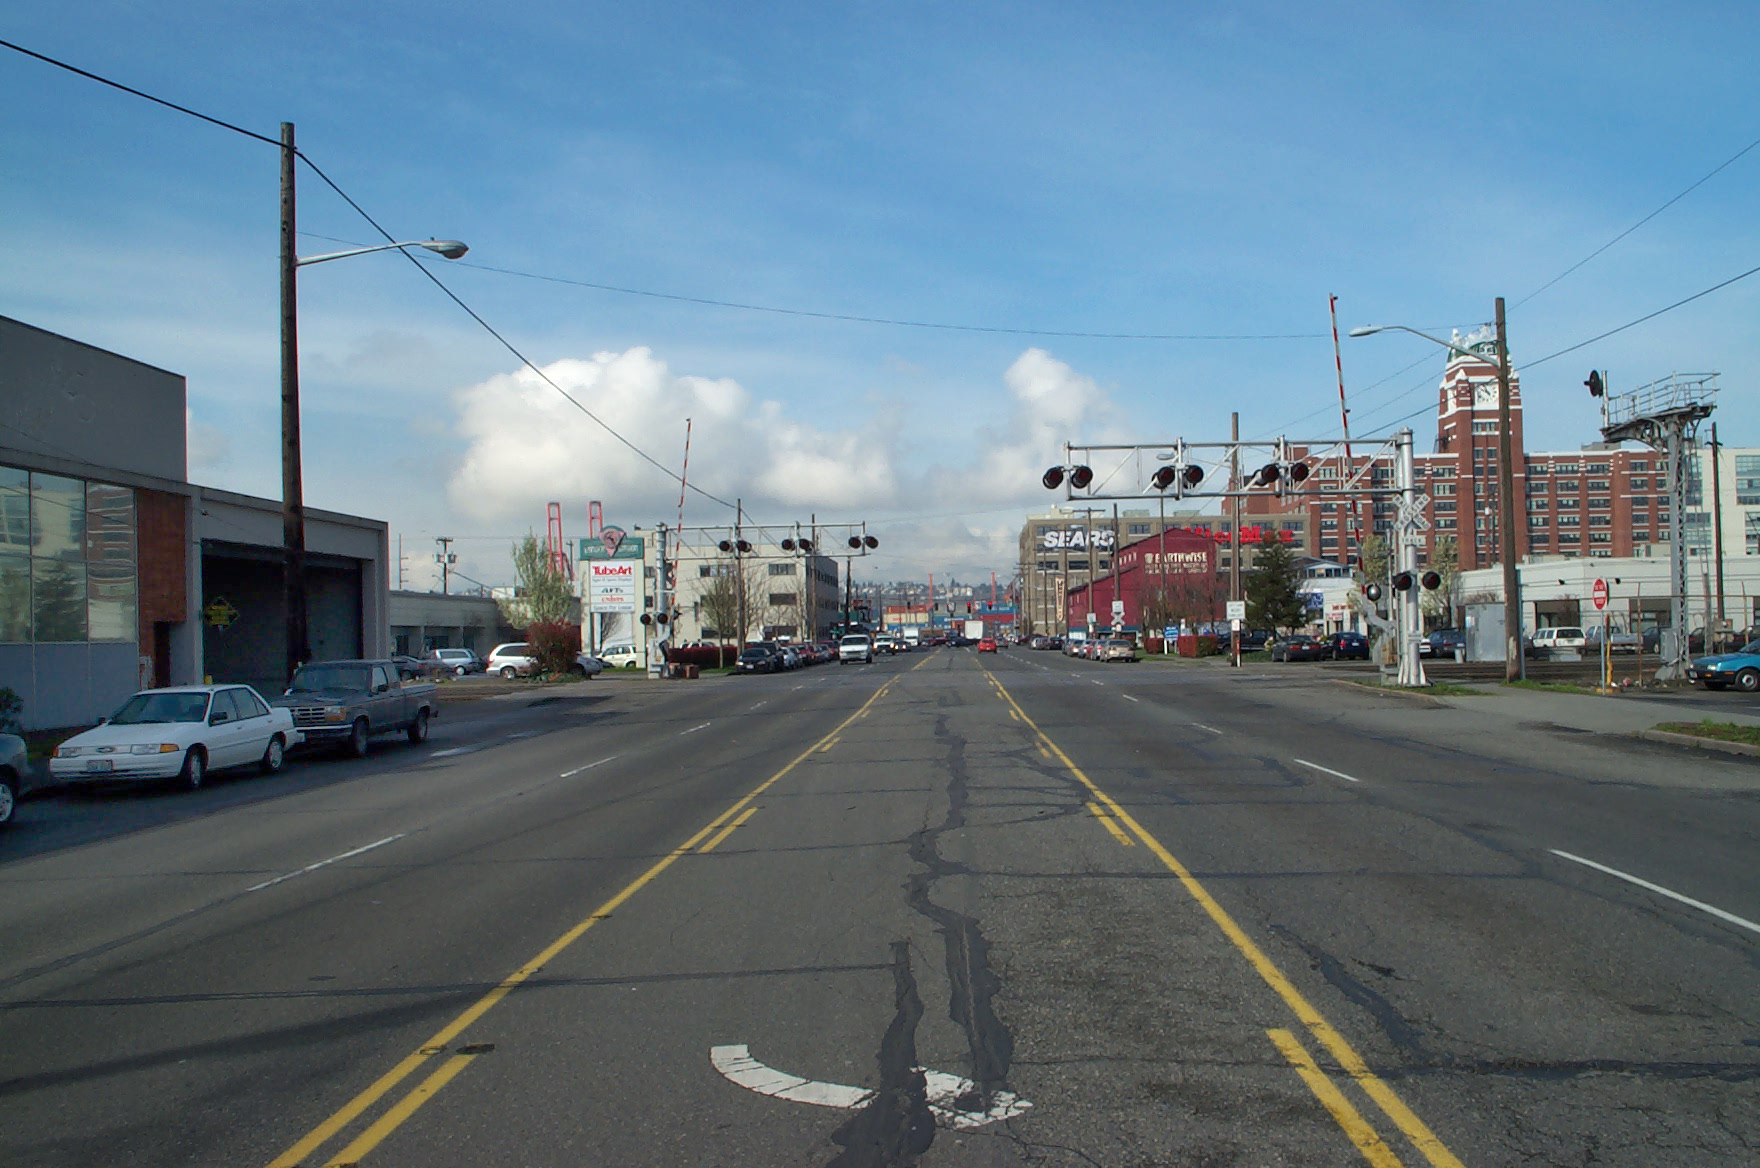 lander street overcrossing and sodo transit